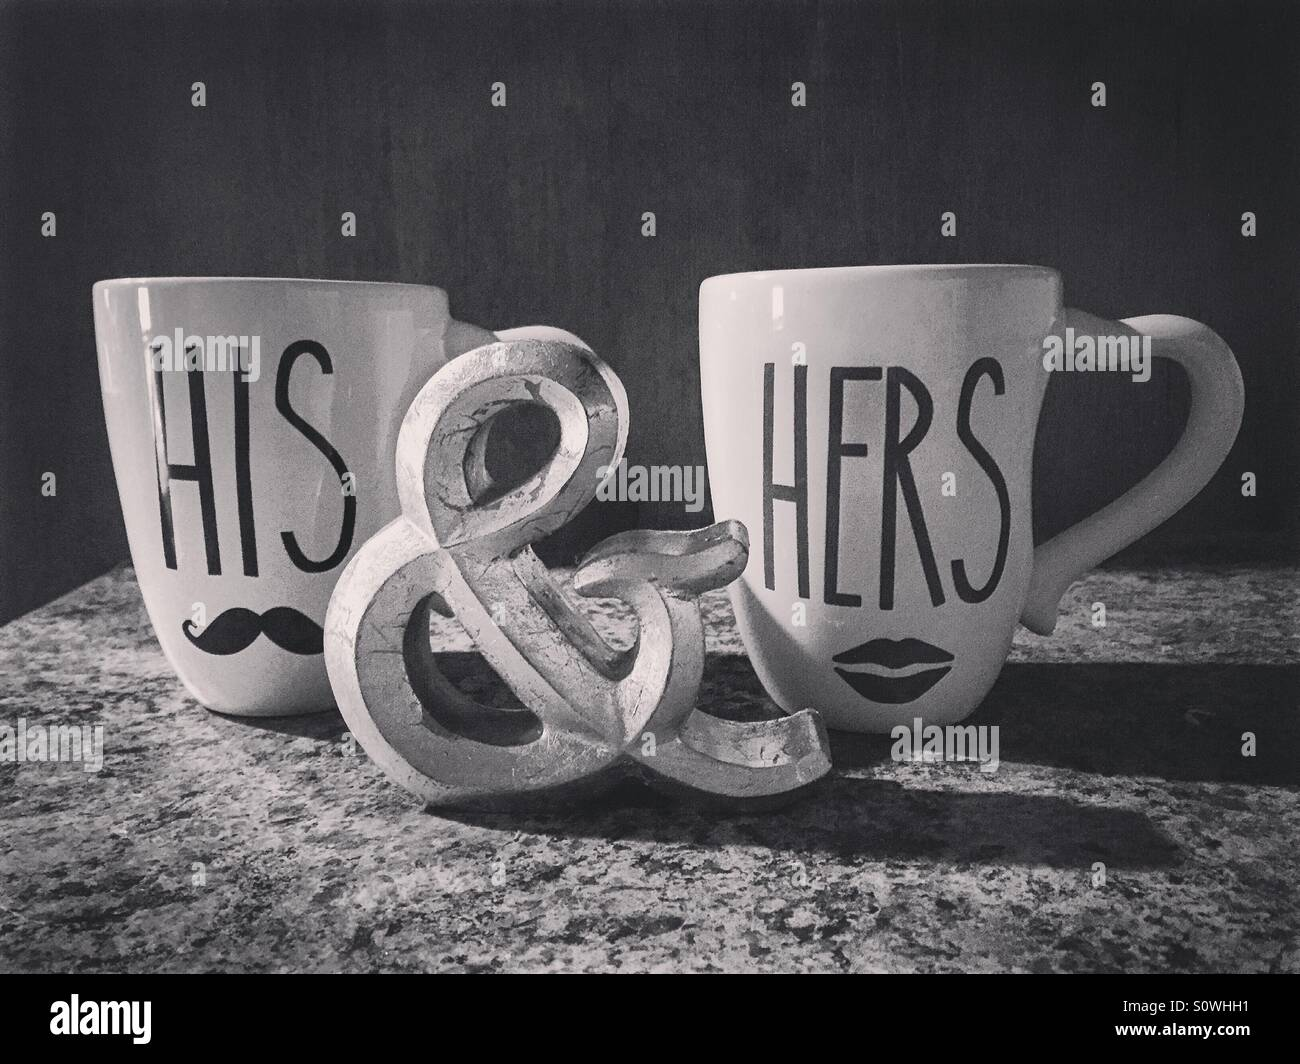 His and Hers - Stock Image